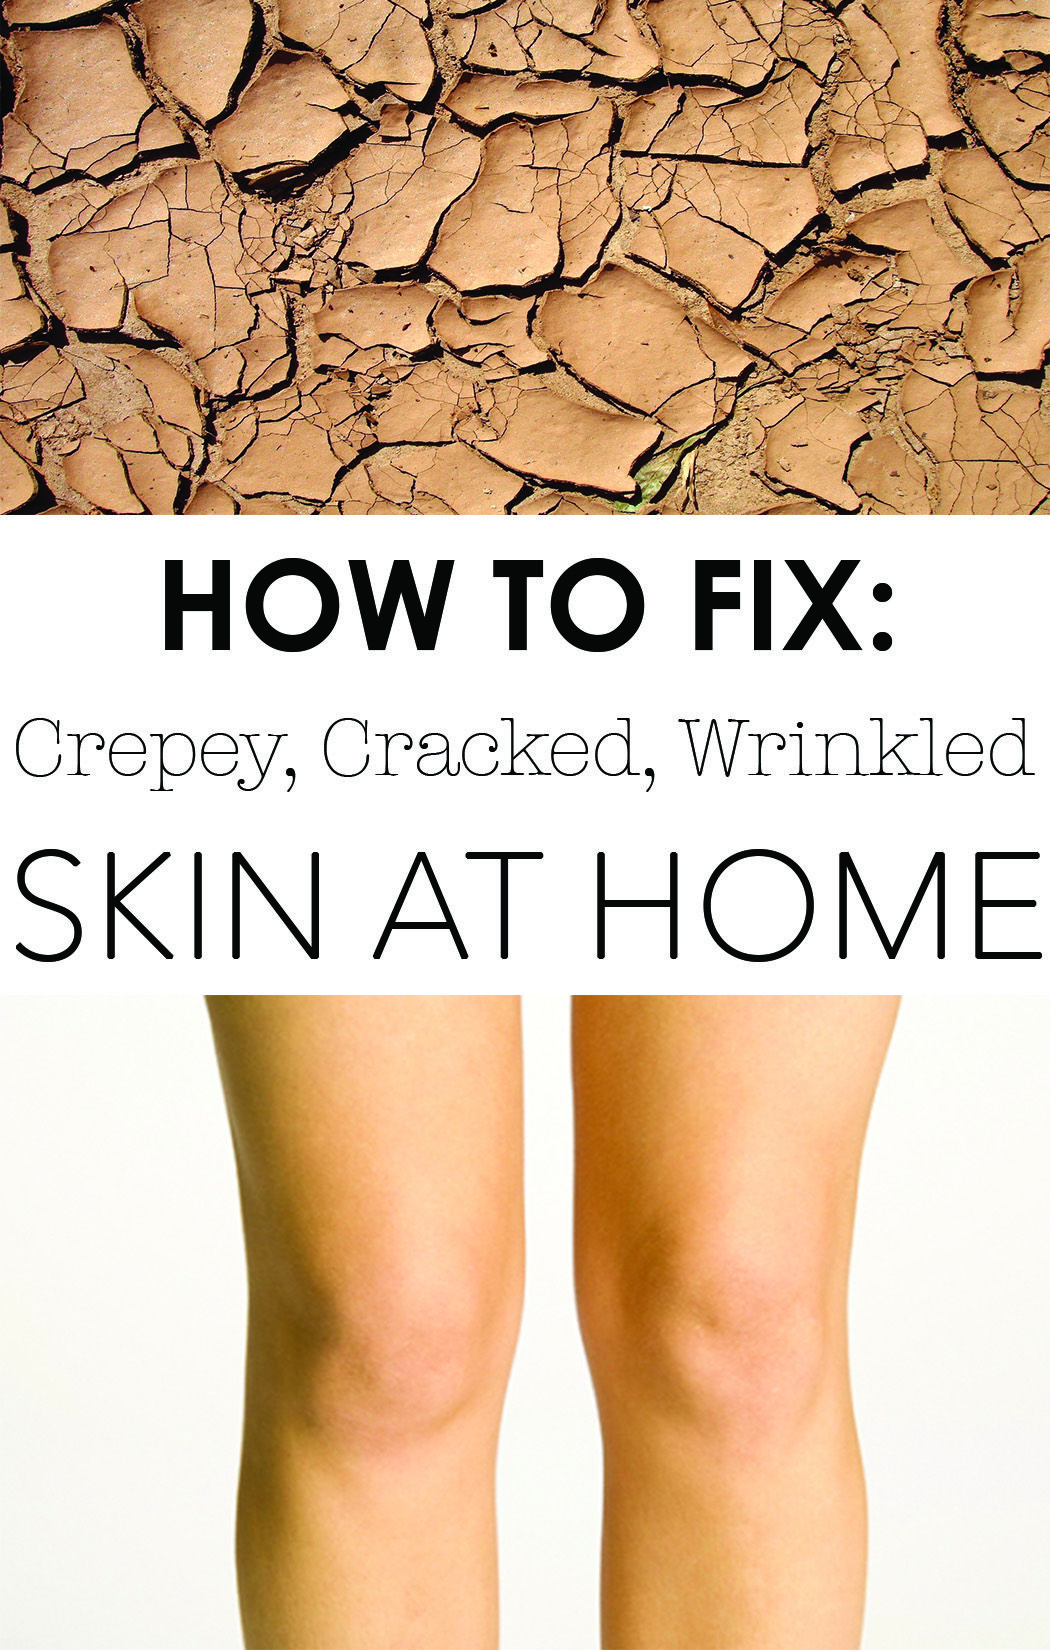 e9c4c804e17f45eb57e56323a784e12d - How To Get Rid Of Crepey Skin On Knees